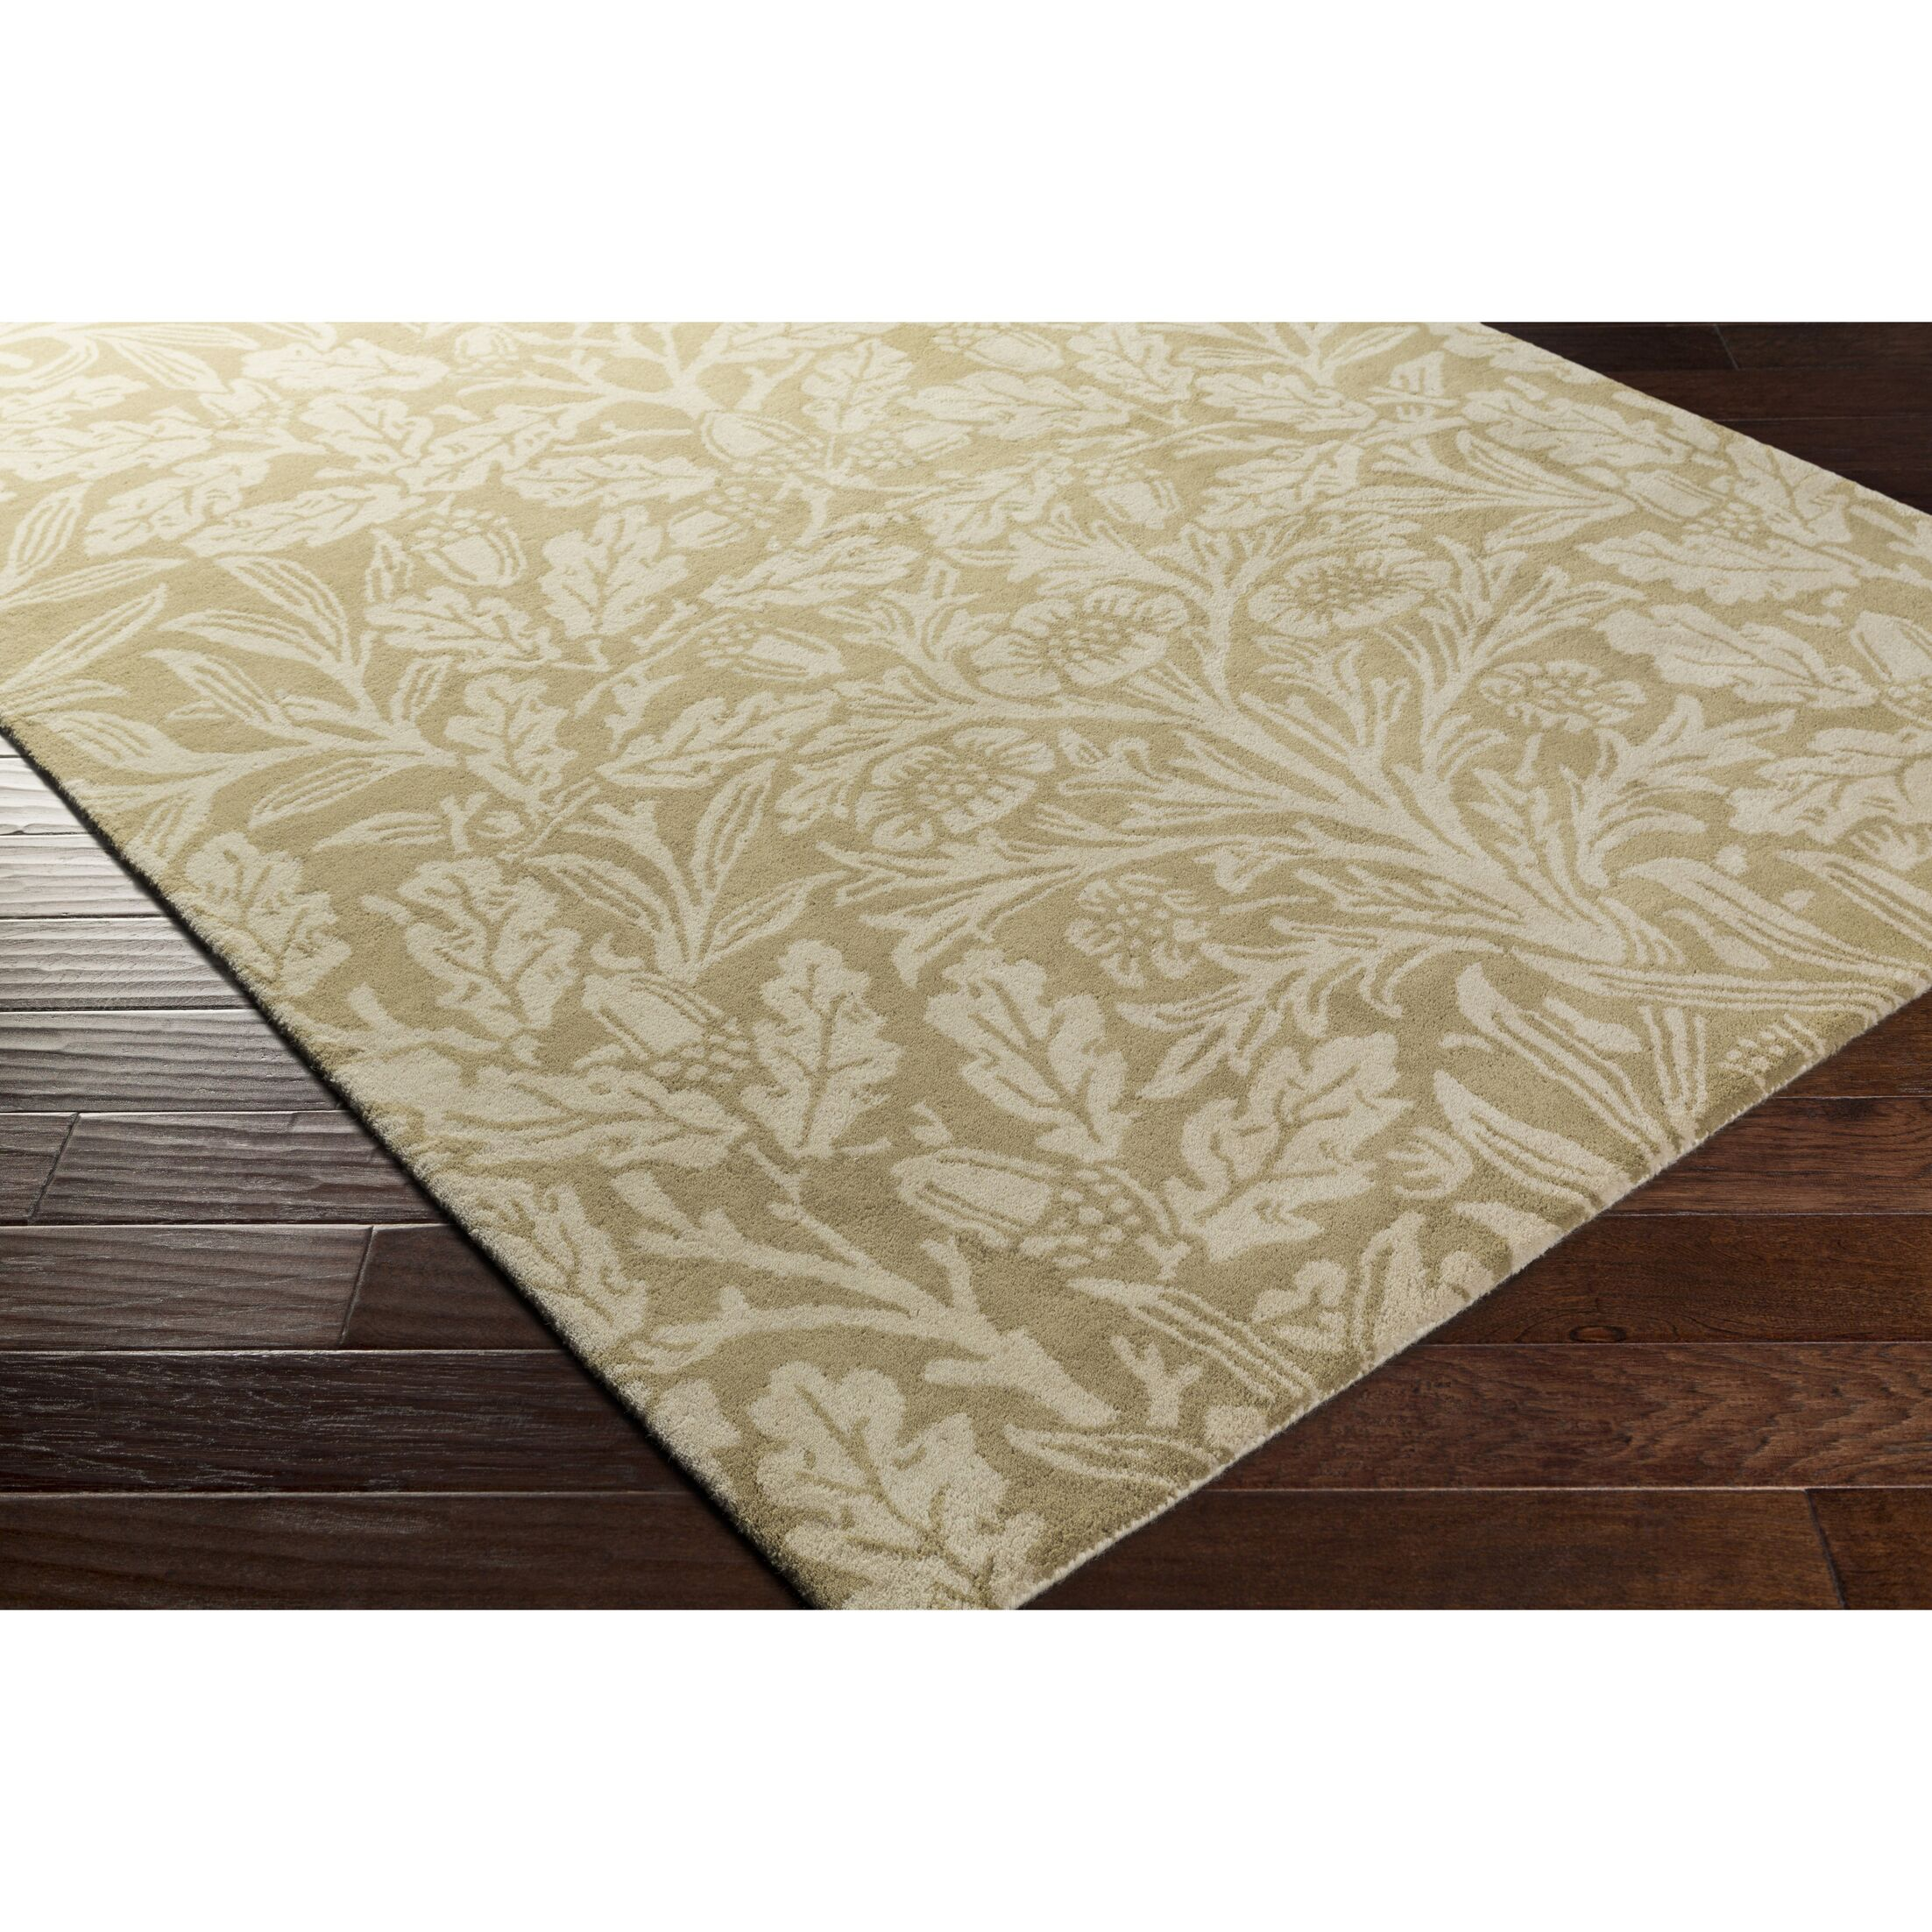 Oneill Hand-Tufted Wool Green/Neutral Area Rug Rug Size: Rectangle 8' x 11'